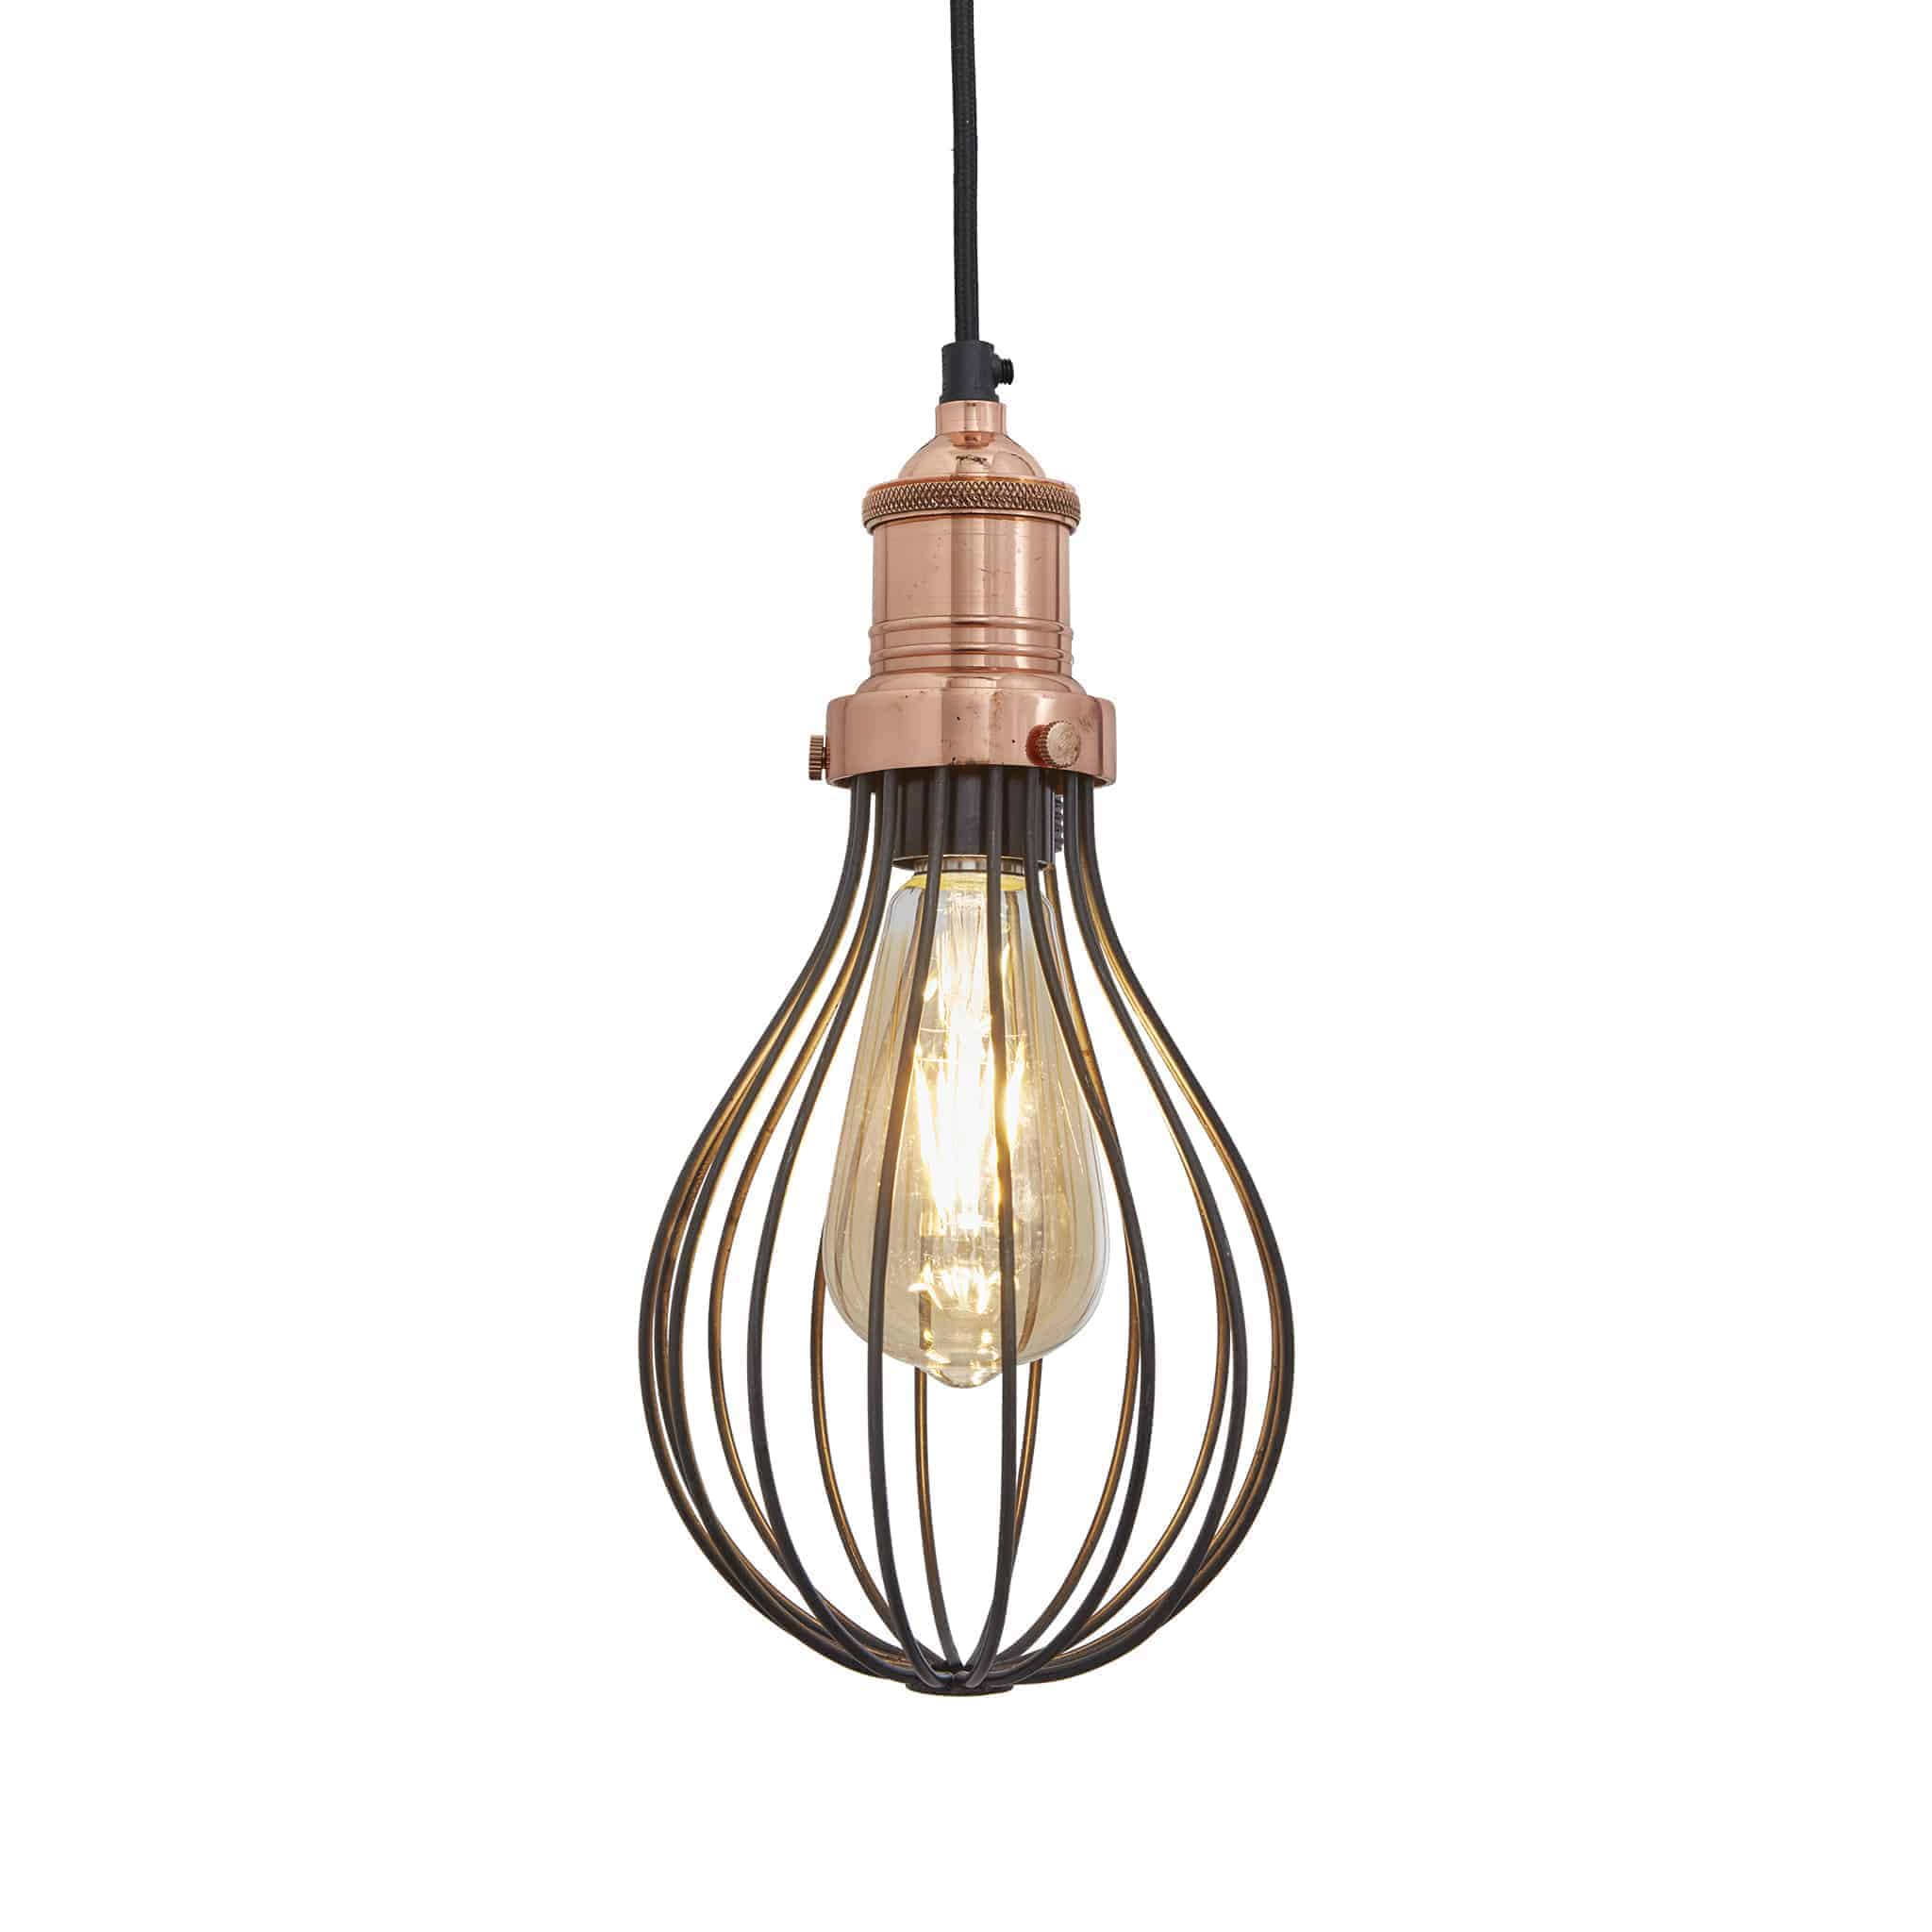 Industville Brooklyn Balloon Cage Pendant – Copper Holder